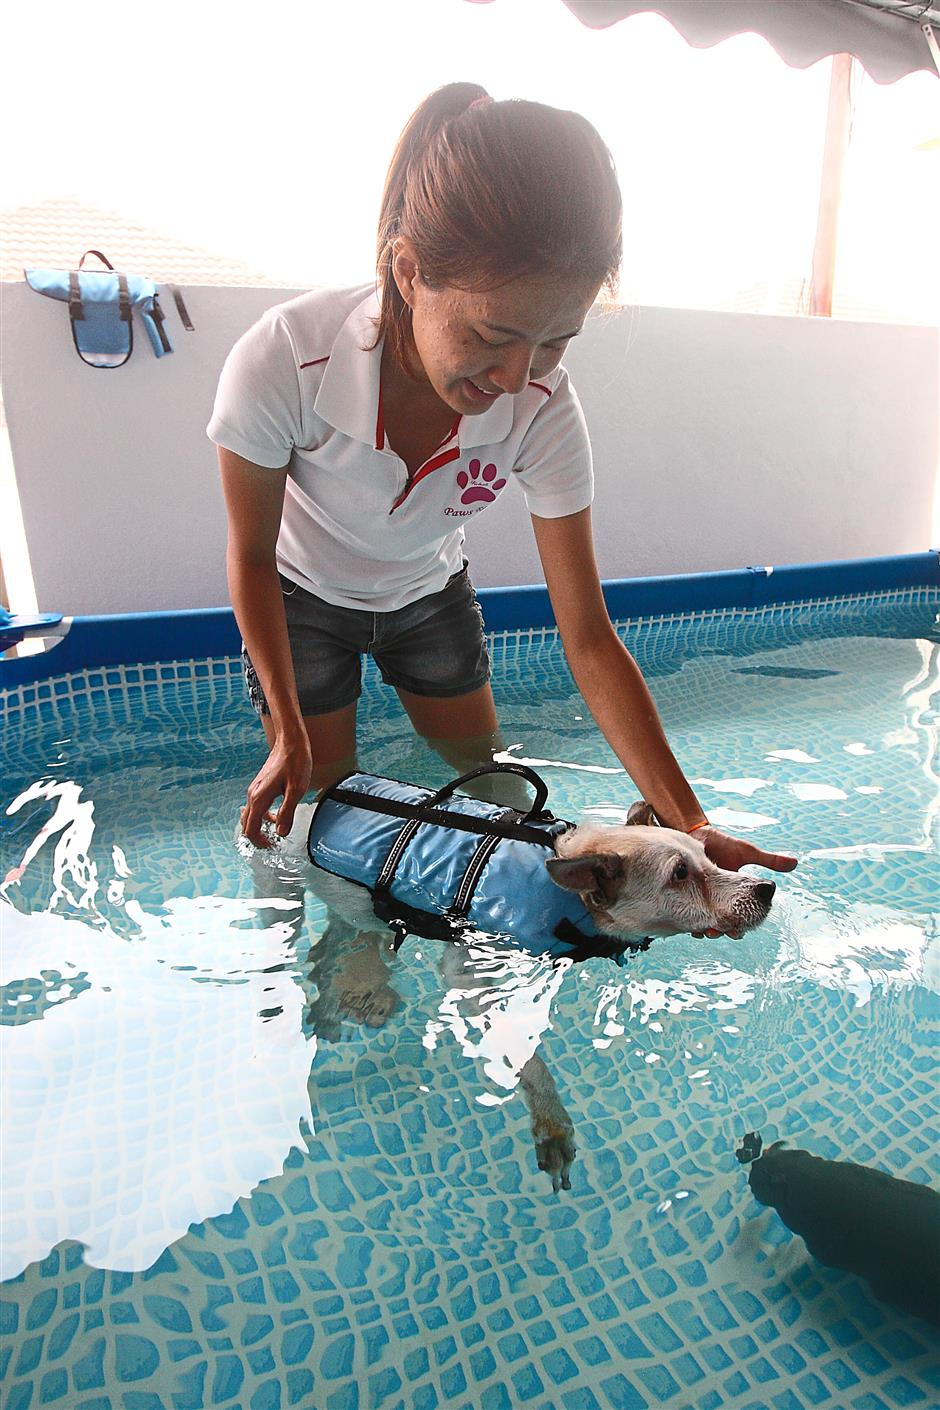 A 14-year-old dog with weak legs and limited mobility due to arthritis undergoing hydrotherapy at Paws Rehab Centre.PHOTOS BY RAYMOND OOI